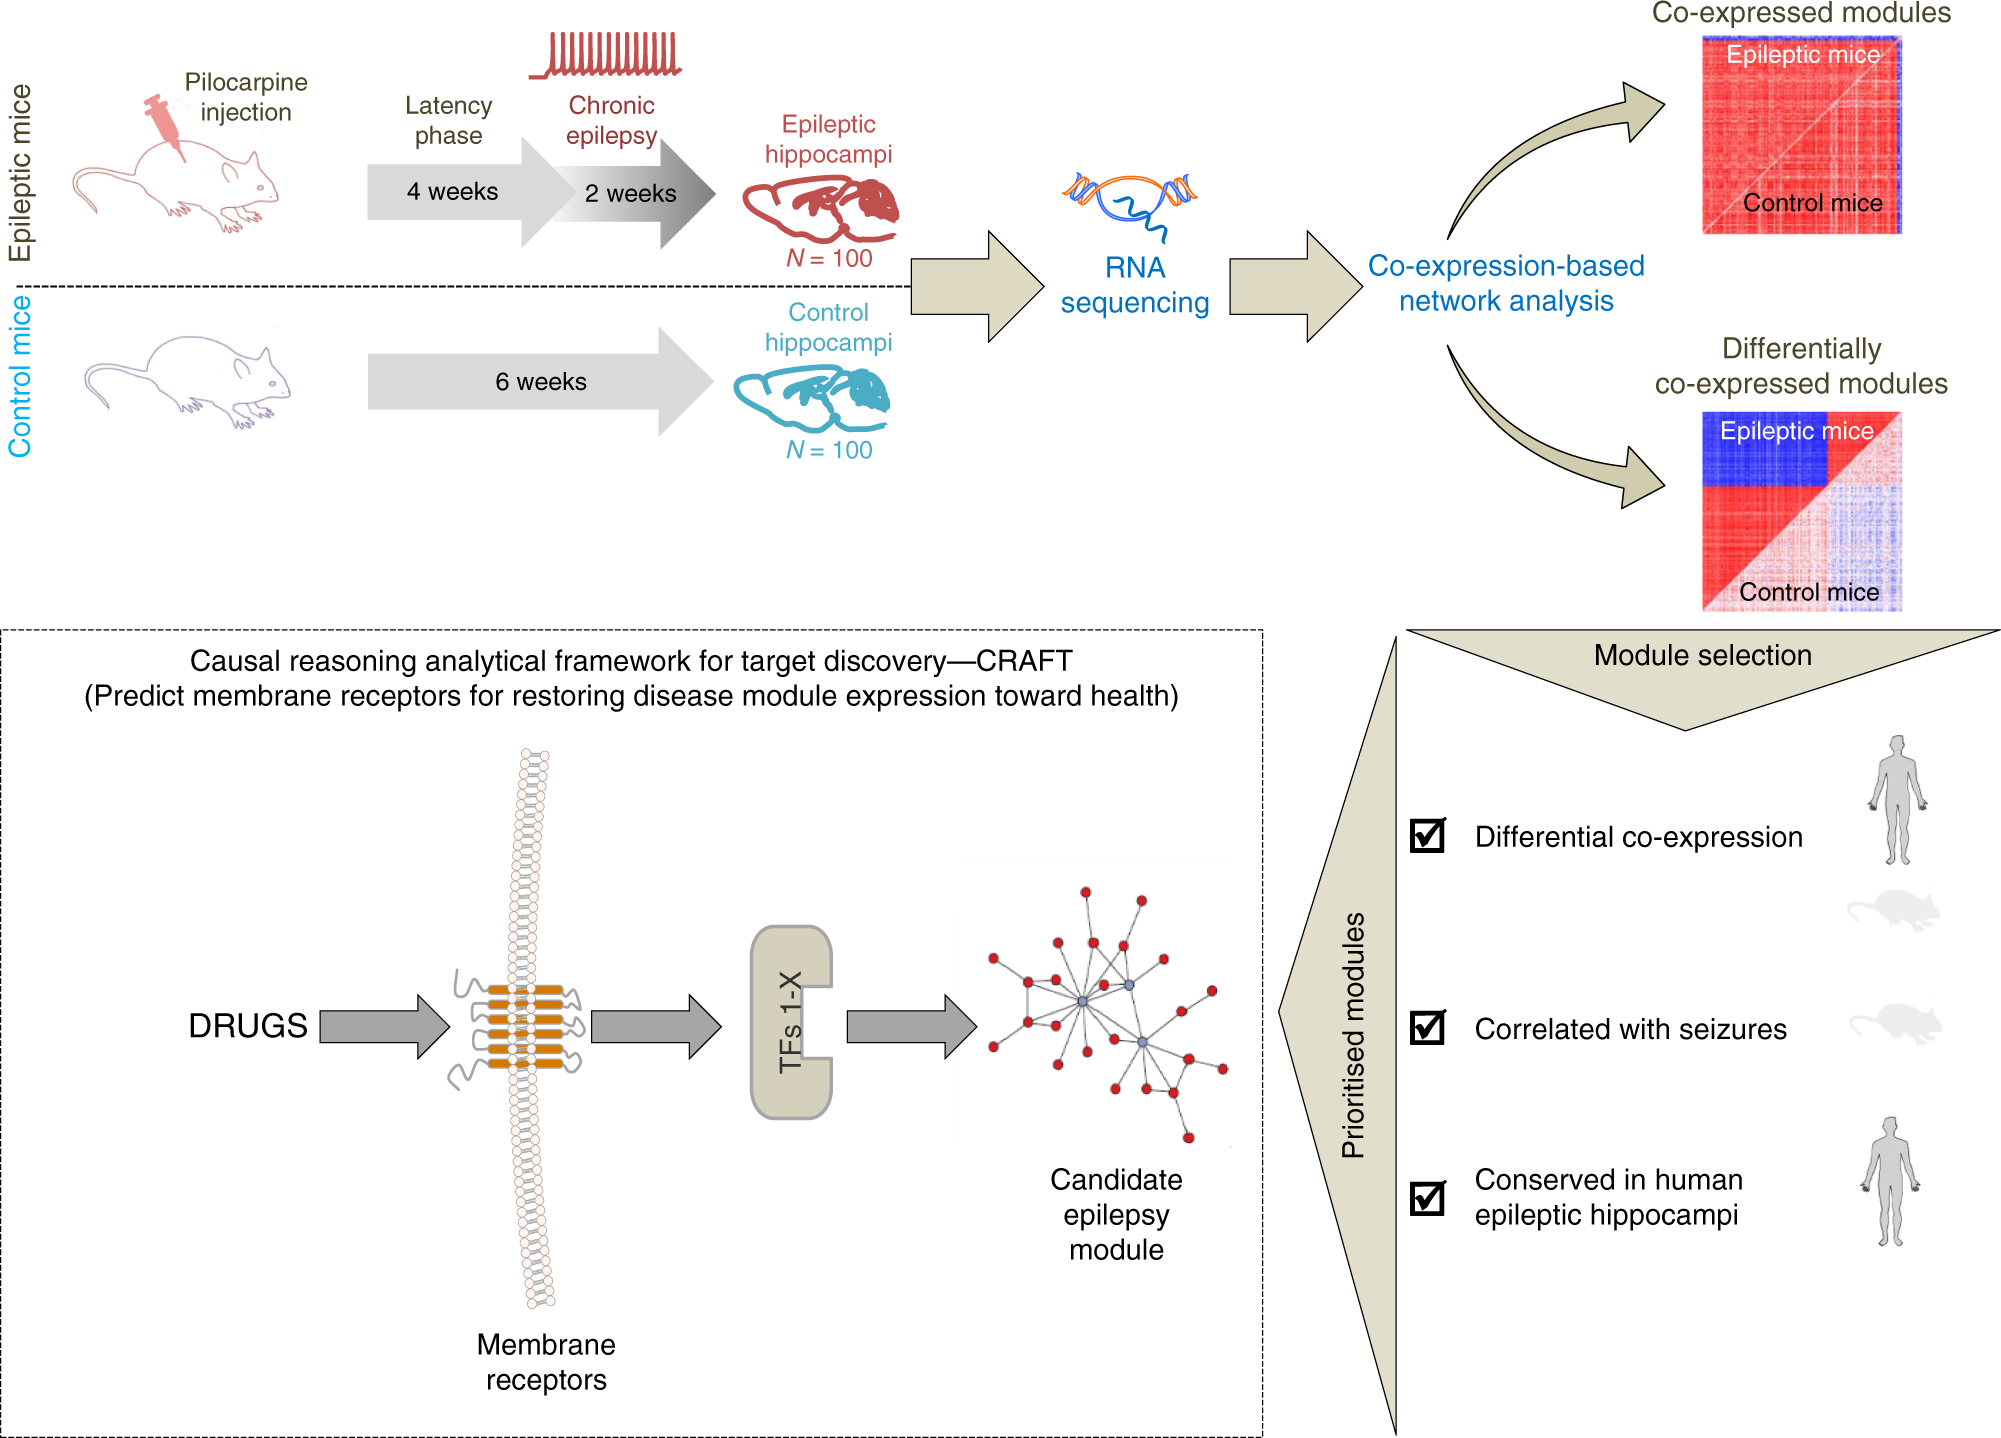 A systems-level framework for drug discovery identifies Csf1R as an